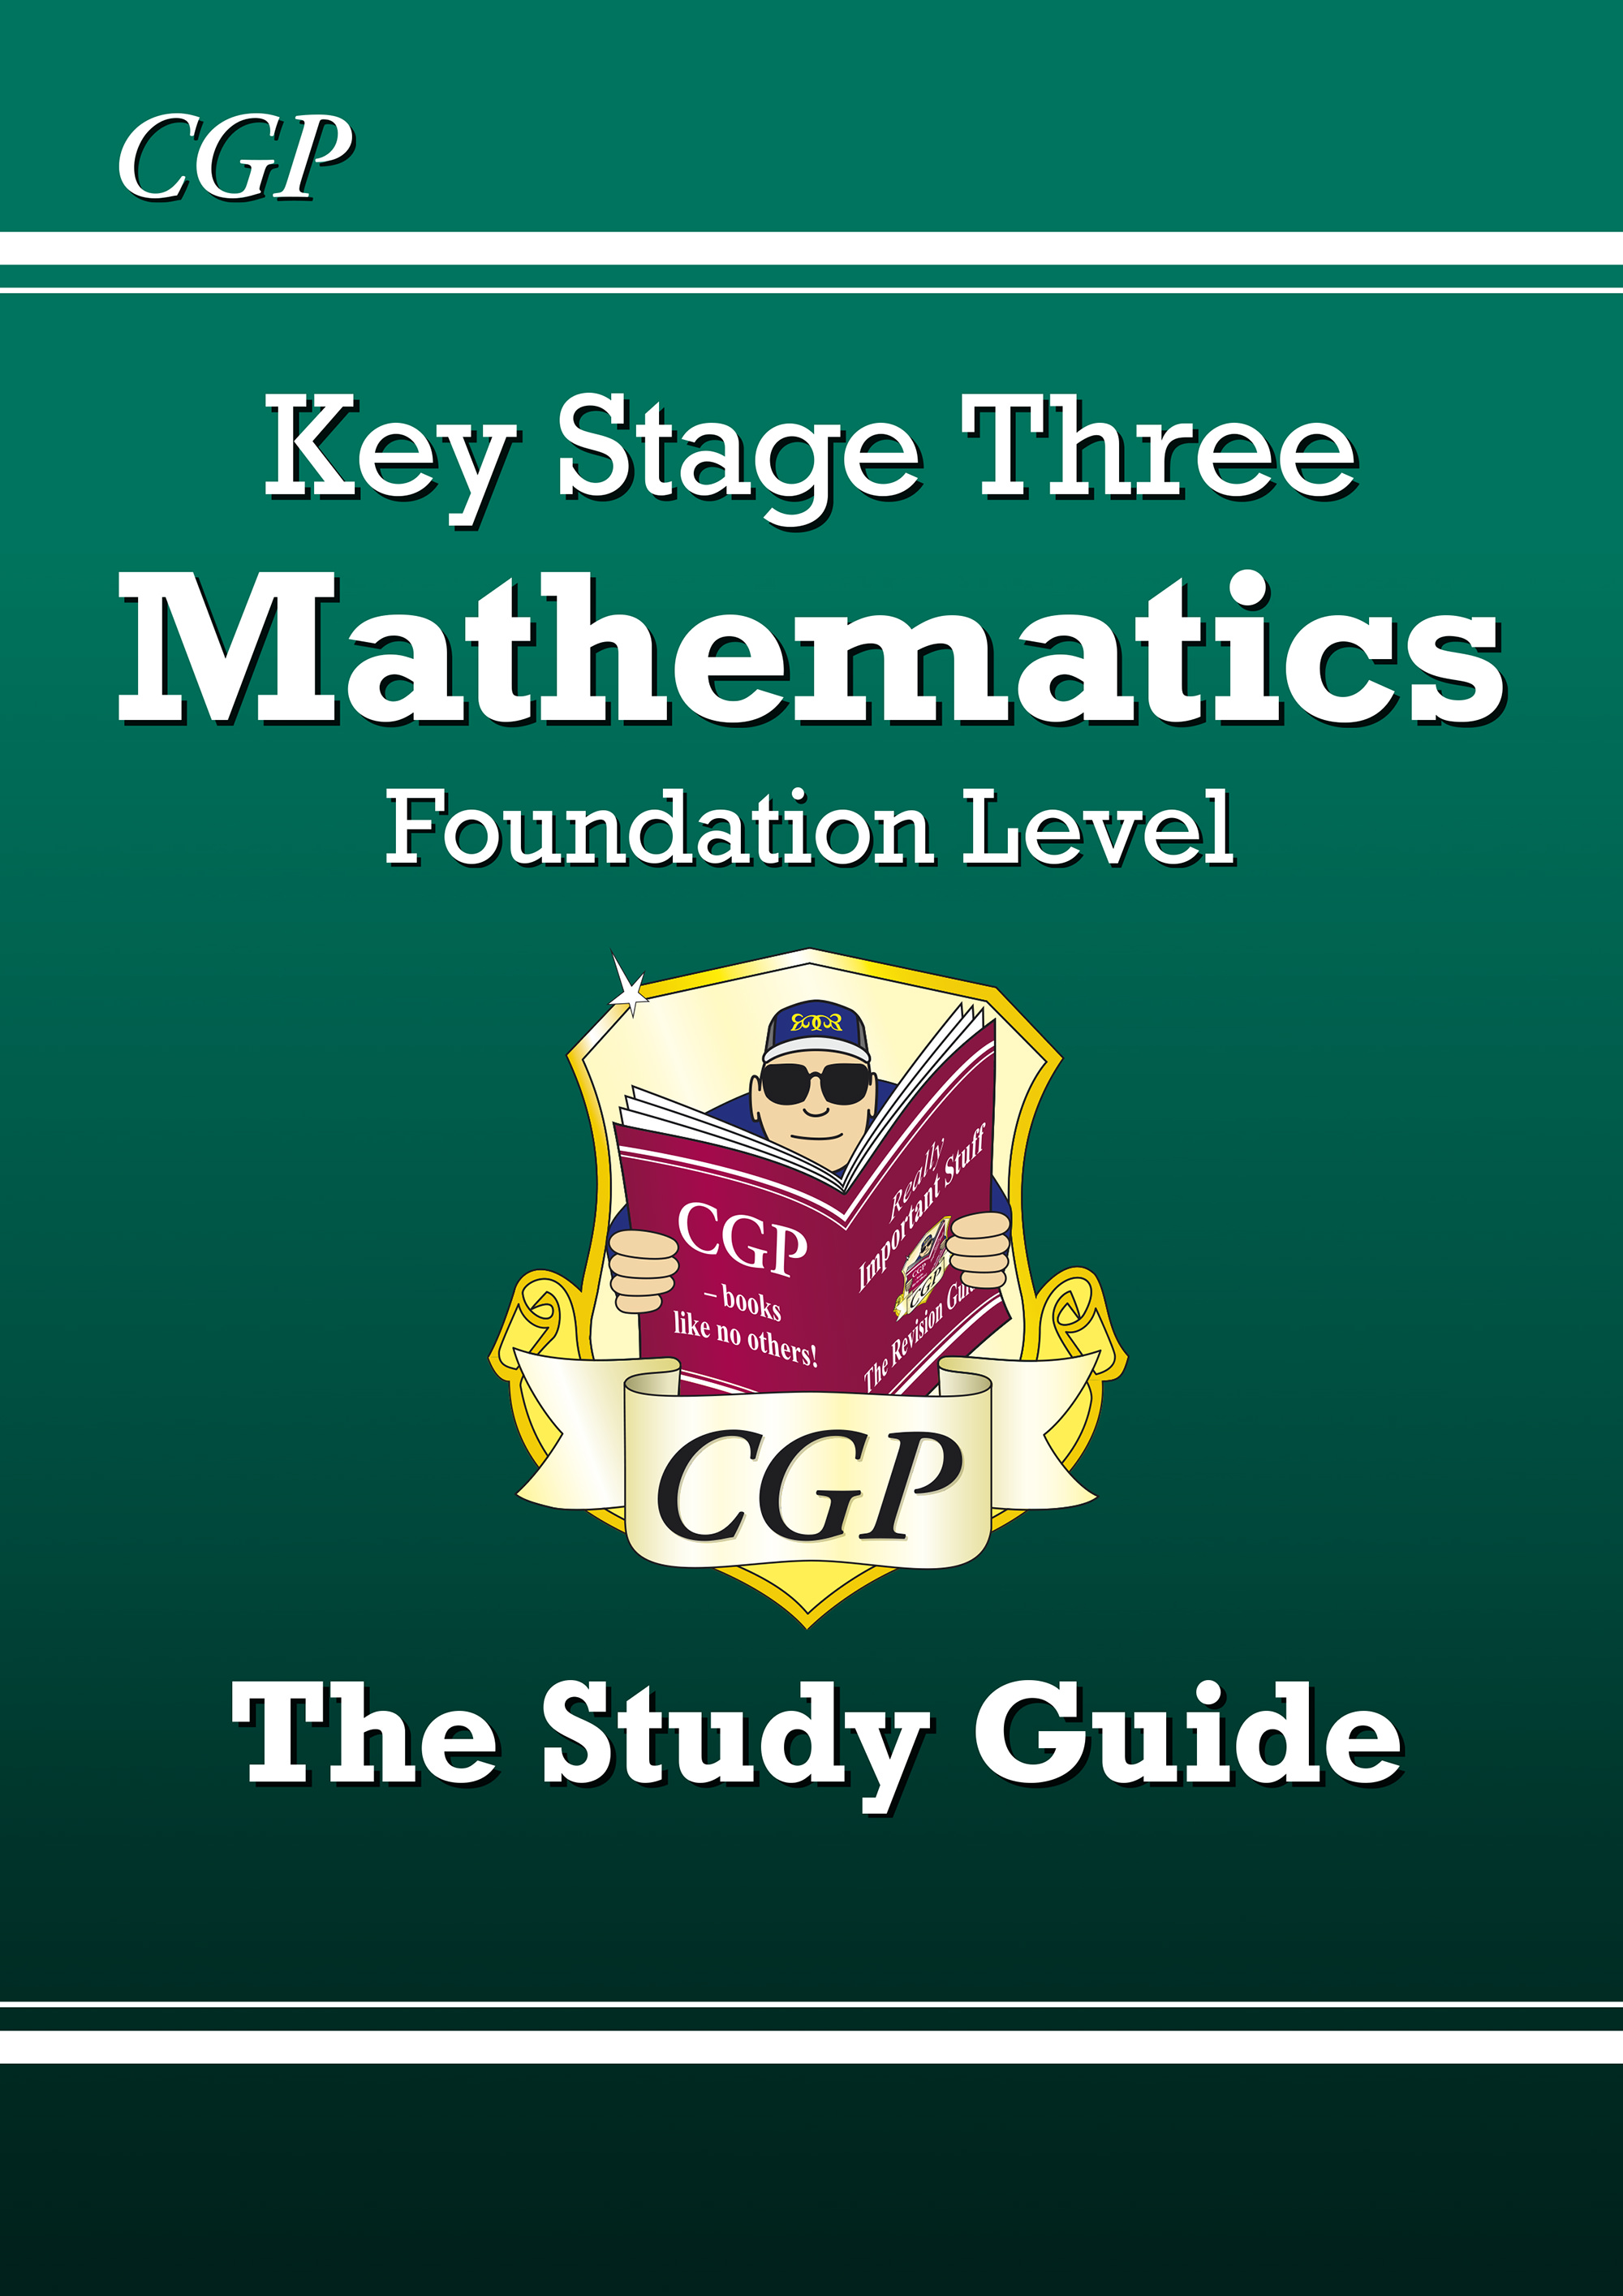 MFR32 - KS3 Maths Study Guide - Foundation